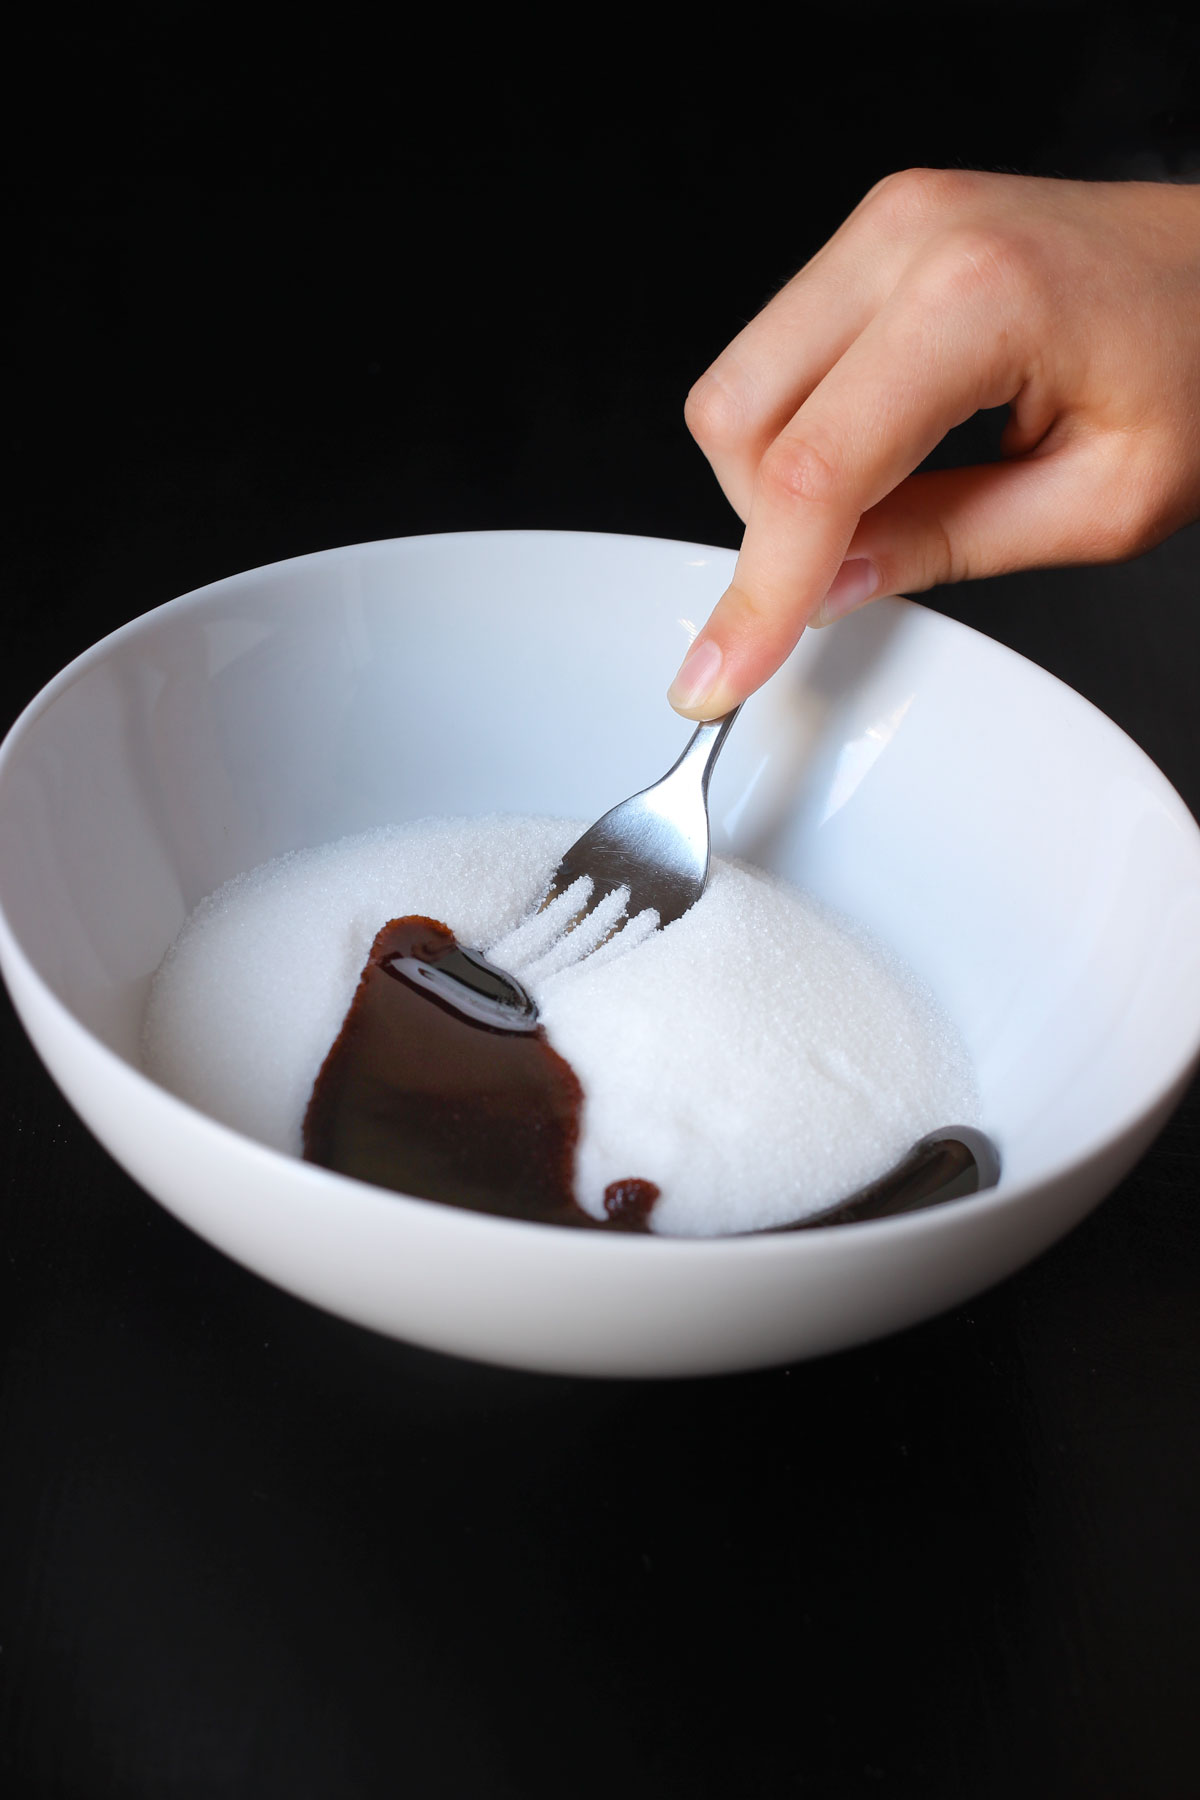 pressing a fork into the mixture to combine them.